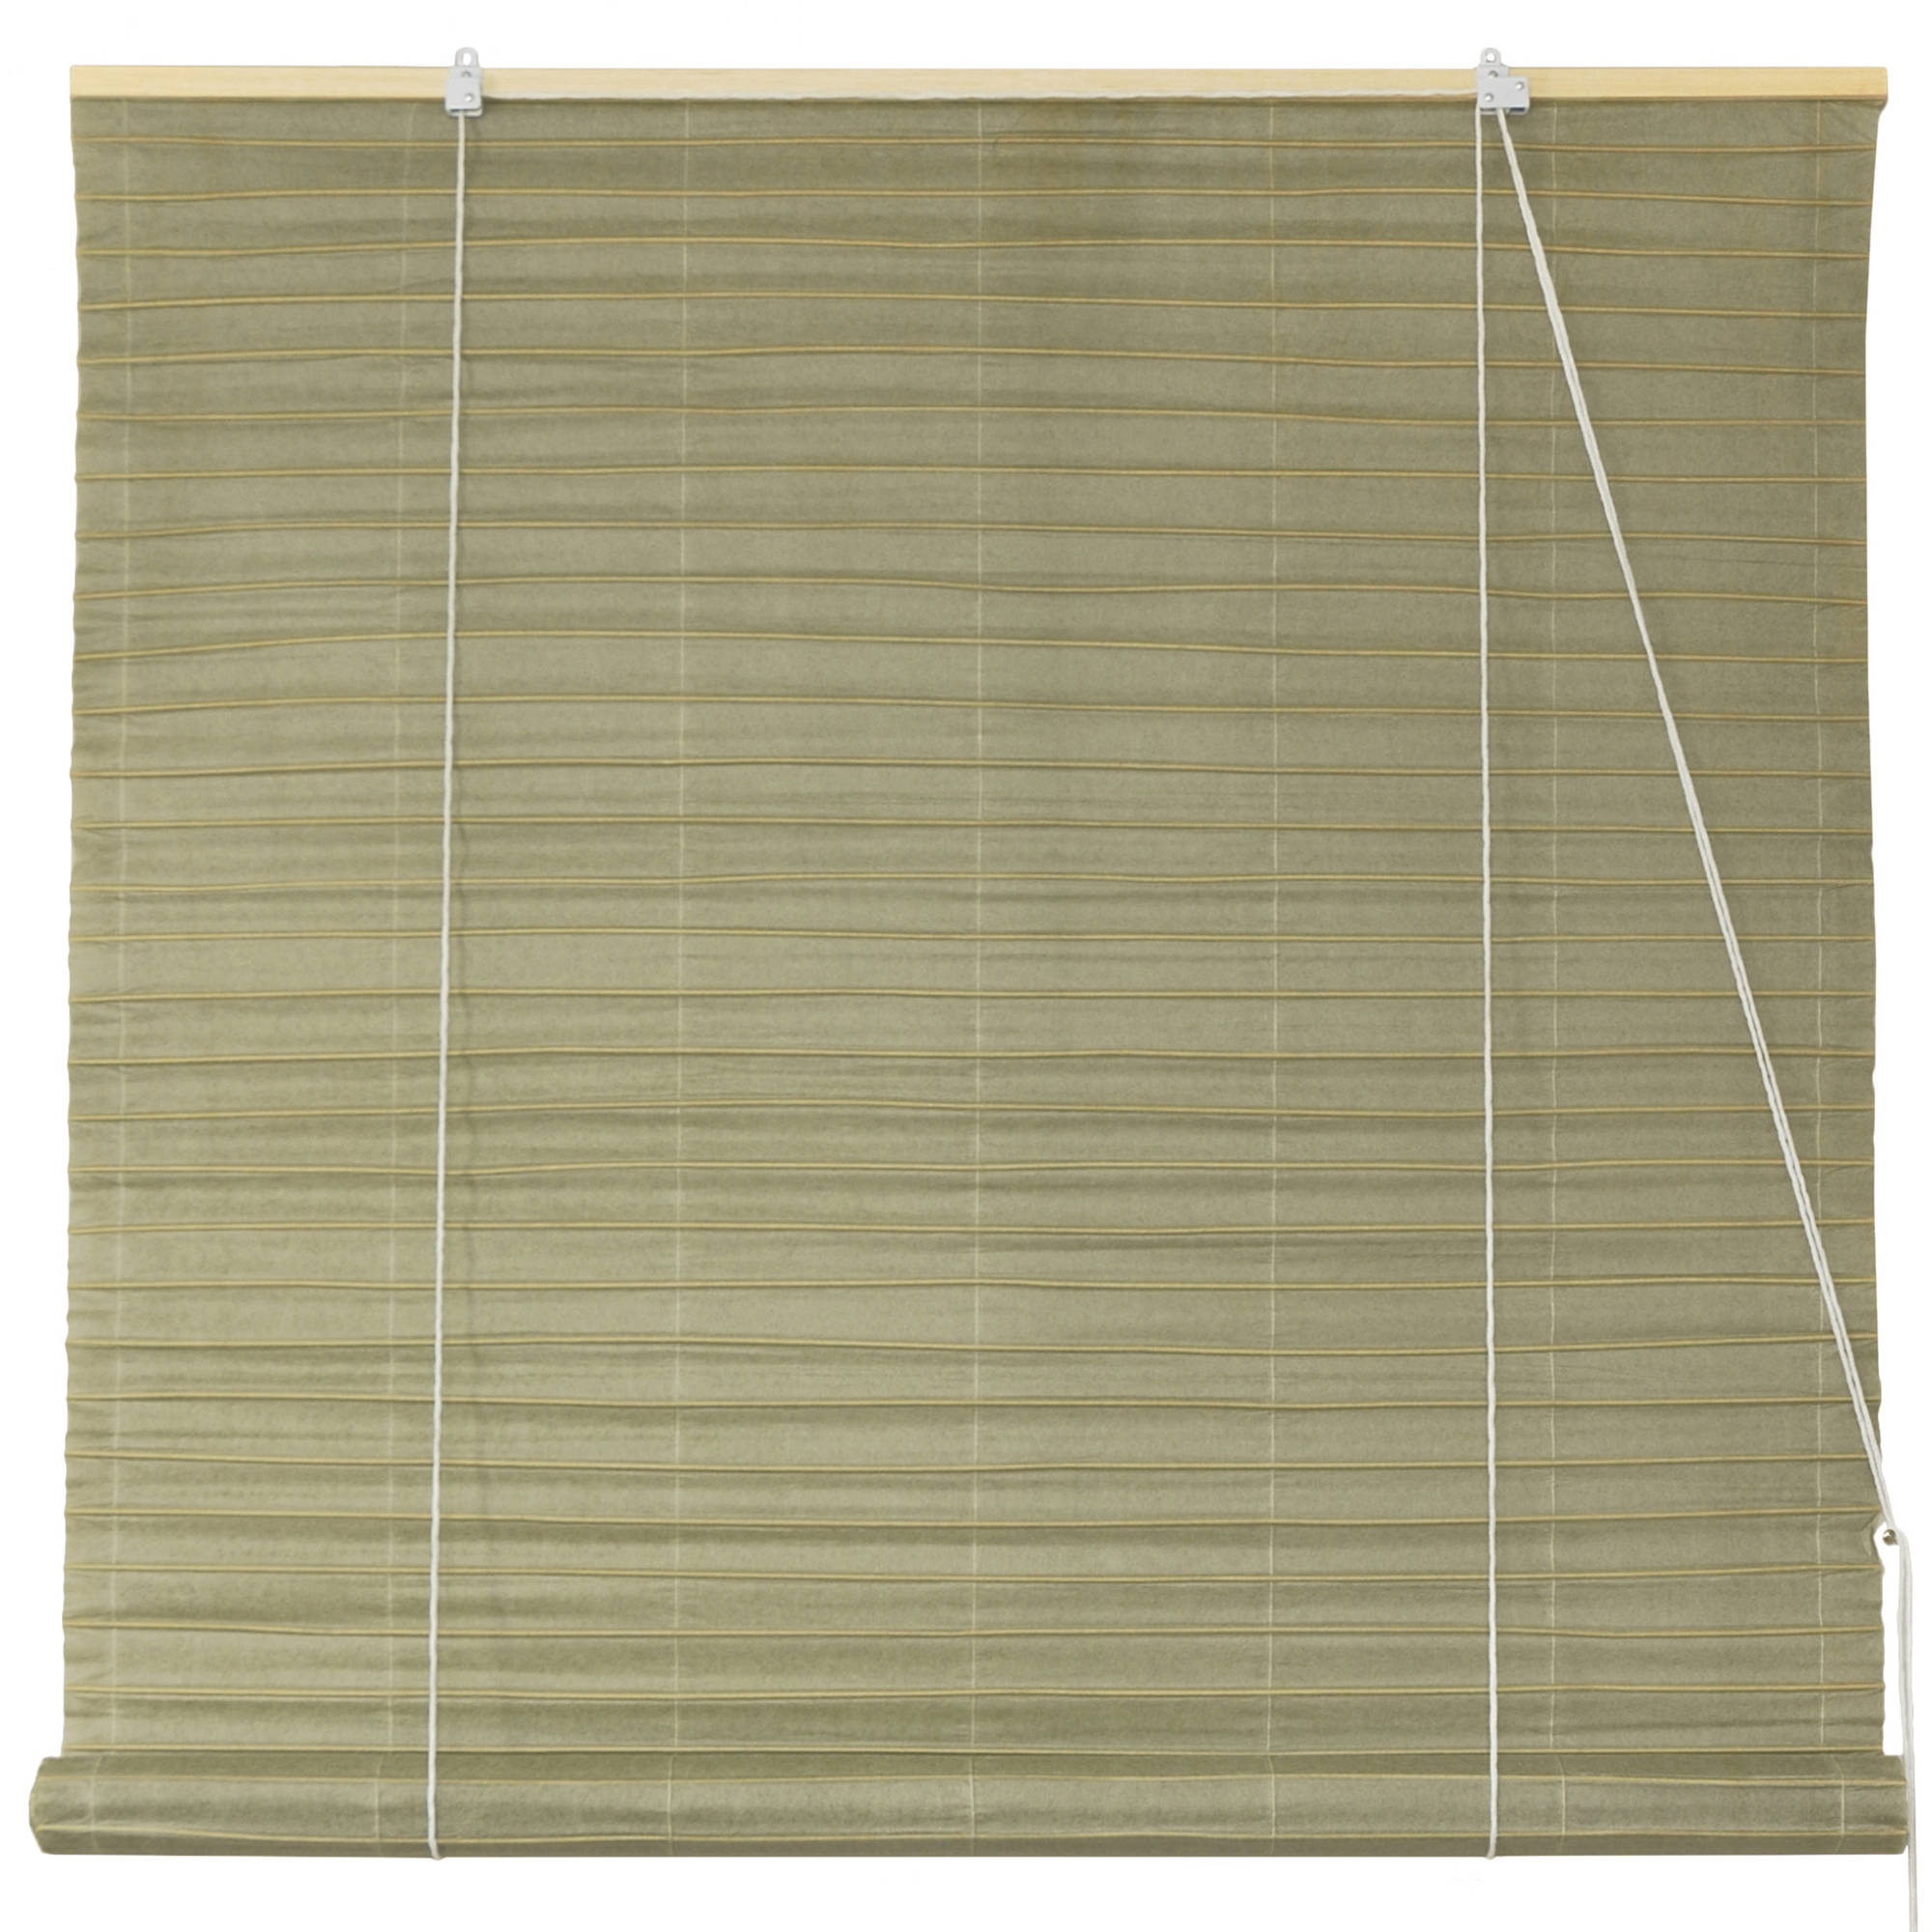 Shoji Paper Roll Up Blinds, Olive